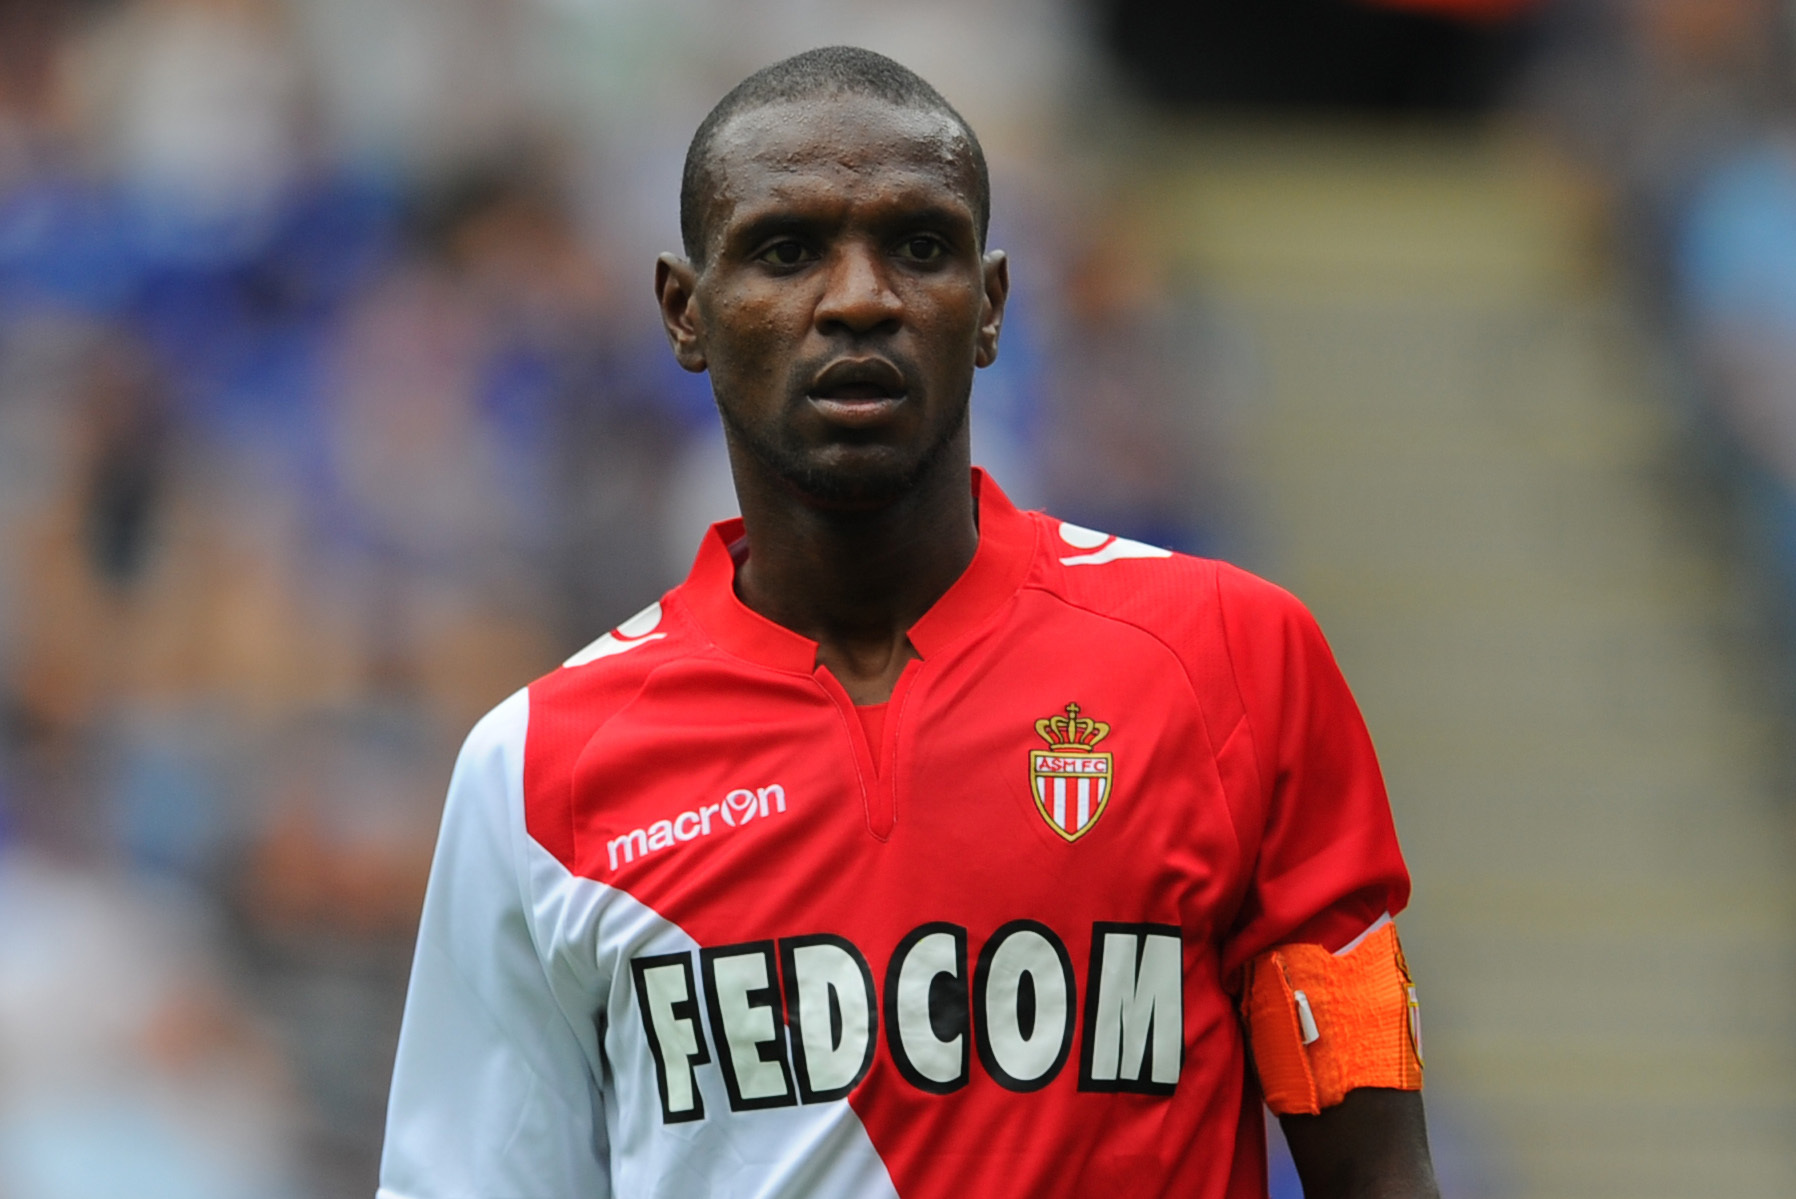 Abidal before the end of his career